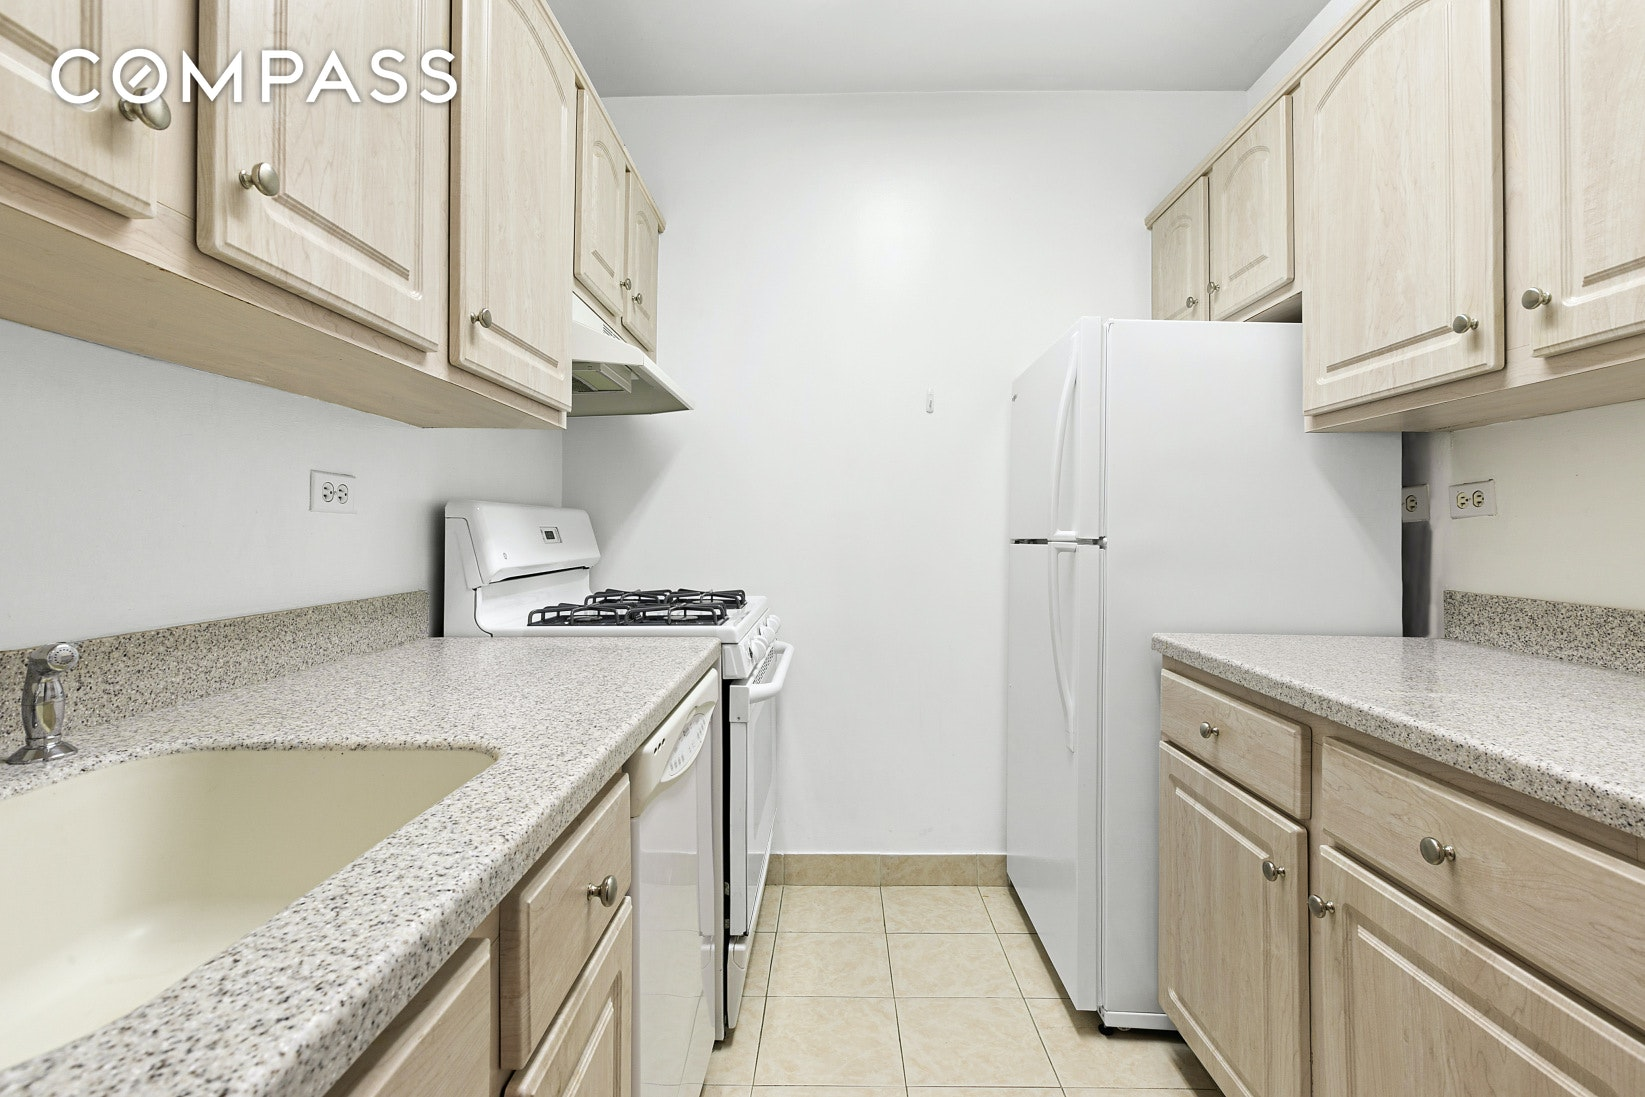 "NO FEE. Best Deal in the neighborhood! This quiet renovated apartment boasts beautiful eastern light and an abundance of closets. The oversized windows overlook a planted set-back garden that changes with the seasons. The building is highly sought-after and on the ""best tree-lined Flatiron block"" situated across from the Madison Square plaza and the Flatiron Building. Amenities include full time doorman, concierge, valet, complimentary fully-equipped GYM, children's playroom, Madison Club (residents' lounge), laundry on every floor, ATM in the lobby, a back-up generator and a planted set back garden. Steps away from Union Square Farmers' Market, Madison Square Park, Fifth Ave shopping, Eataly, Trader Joes, Whole Foods, Shake Shack and many great restaurants. Convenient to all public transportation. Sorry dogs are not allowed for renters. I am a RESIDENT BROKER."